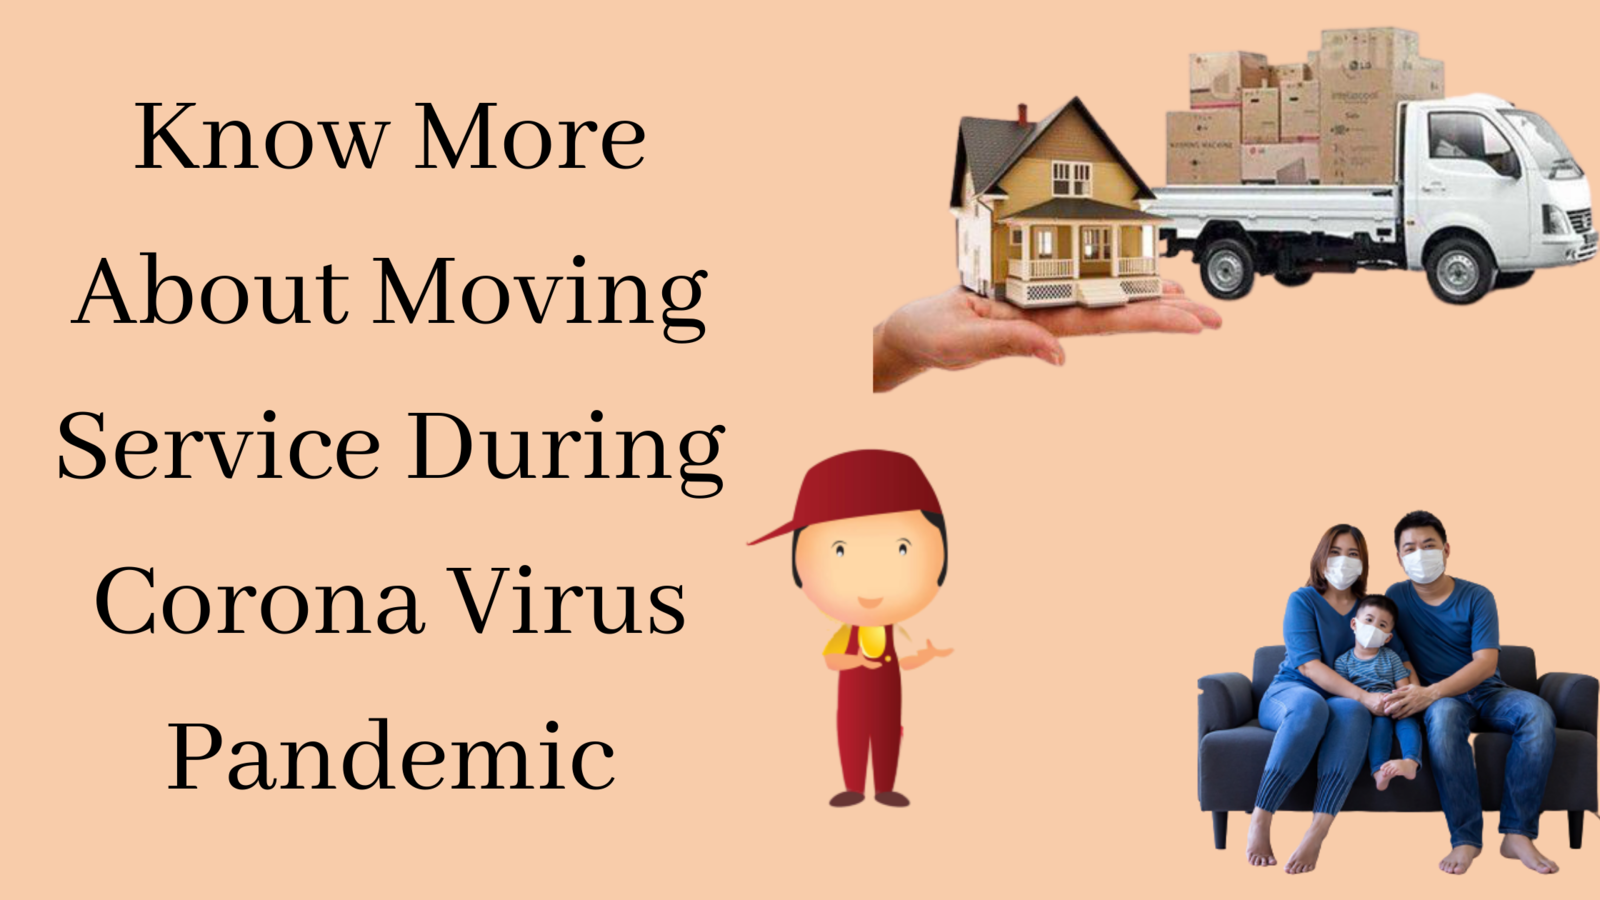 Know More about Moving Service During Corona Virus Pandemic